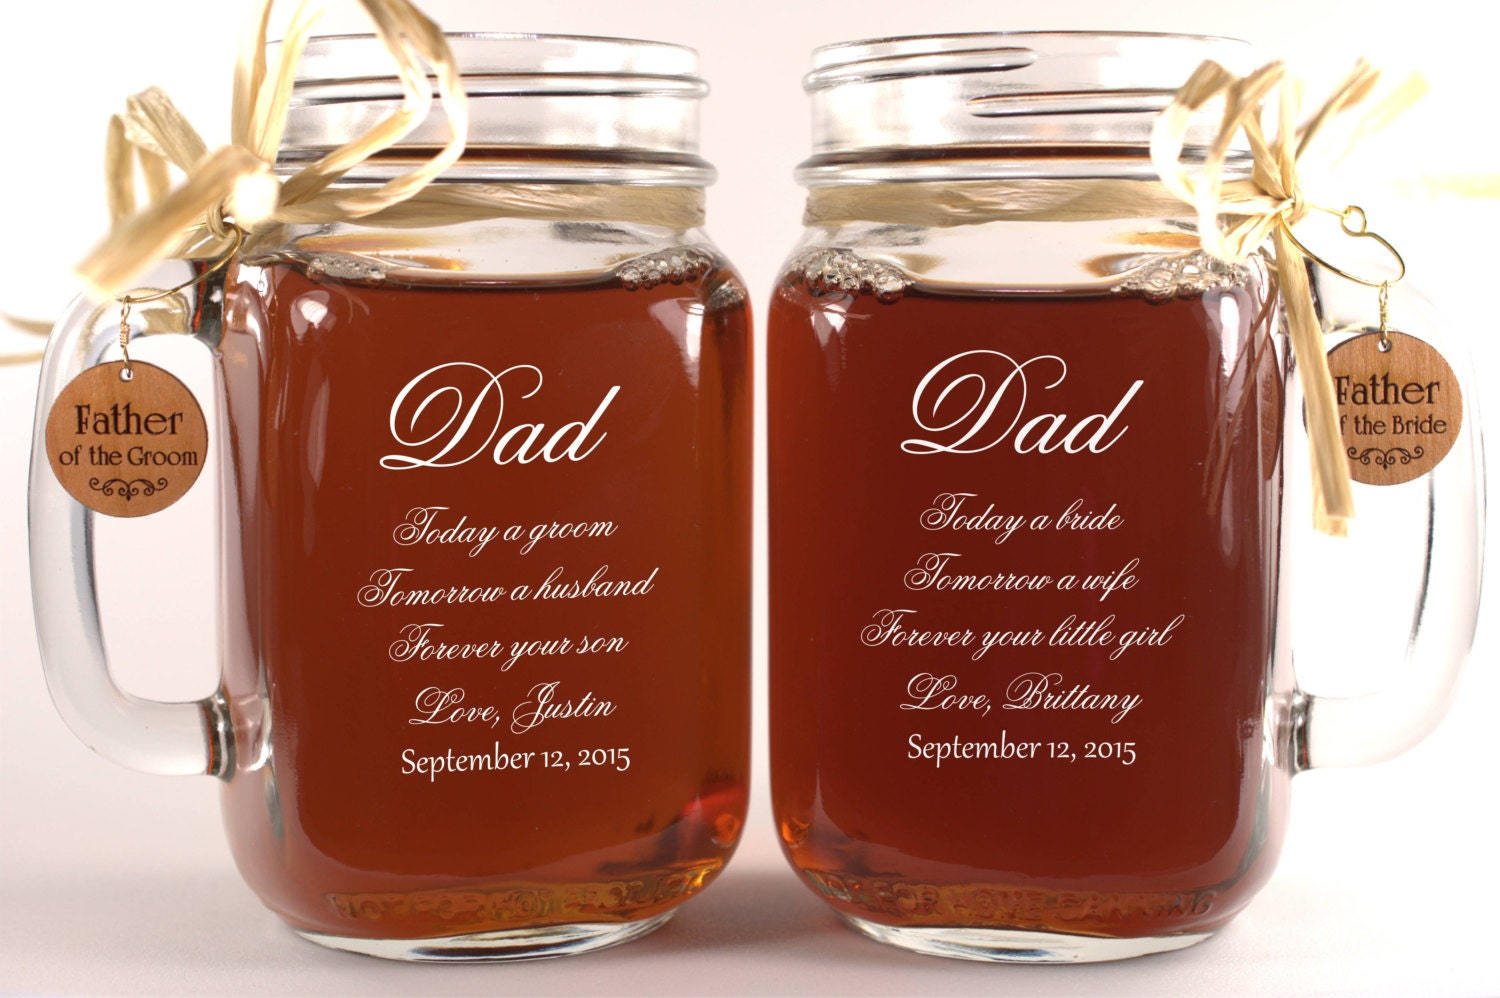 Wedding Gifts For Father Of Bride : Dad Wedding Gift Mason Jars Father of the Groom Gift Father